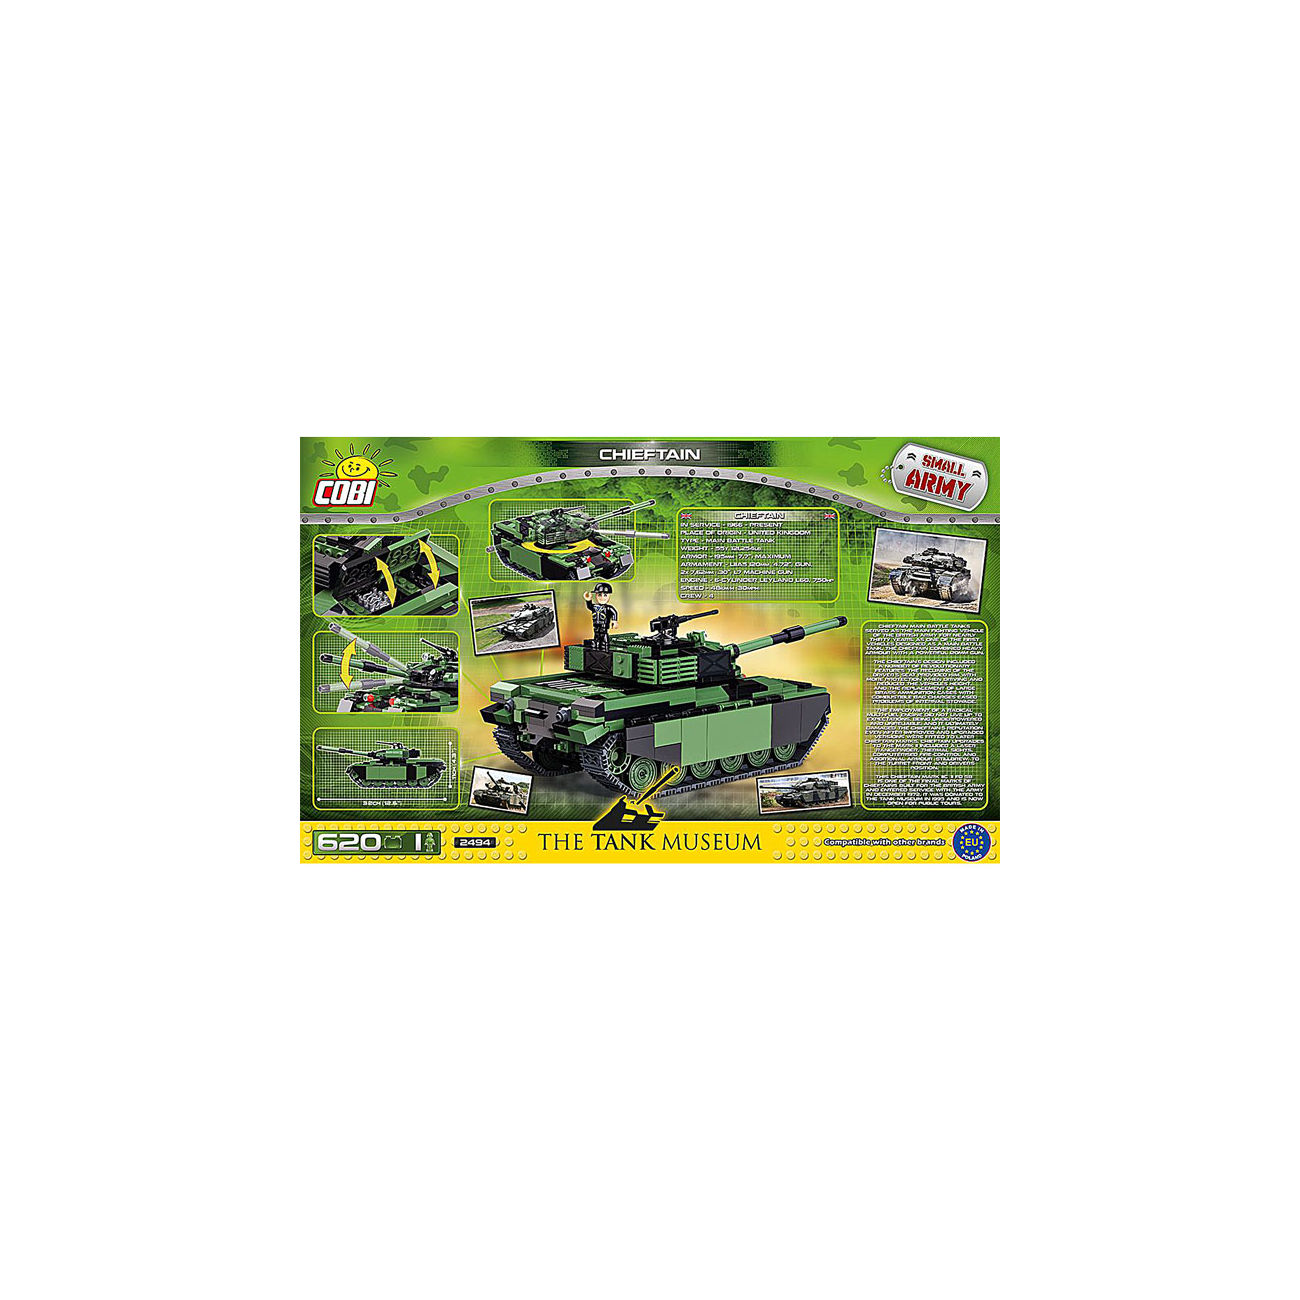 Cobi The Tank Museum Small Army Bausatz Panzer Chieftain 620 Teile 2494 3